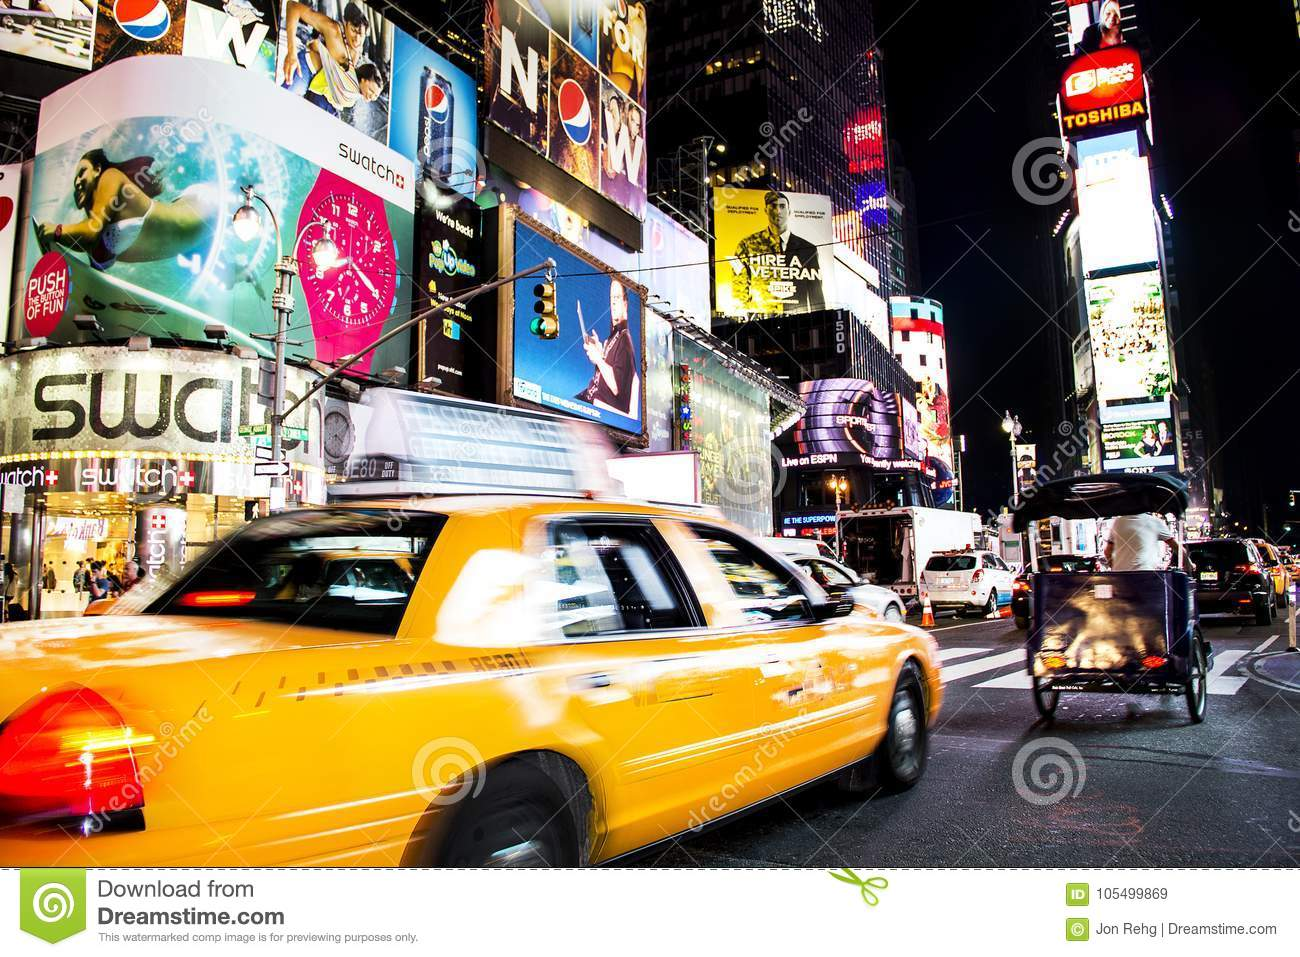 Times Square, New York City, New York, United States - Circa 2012